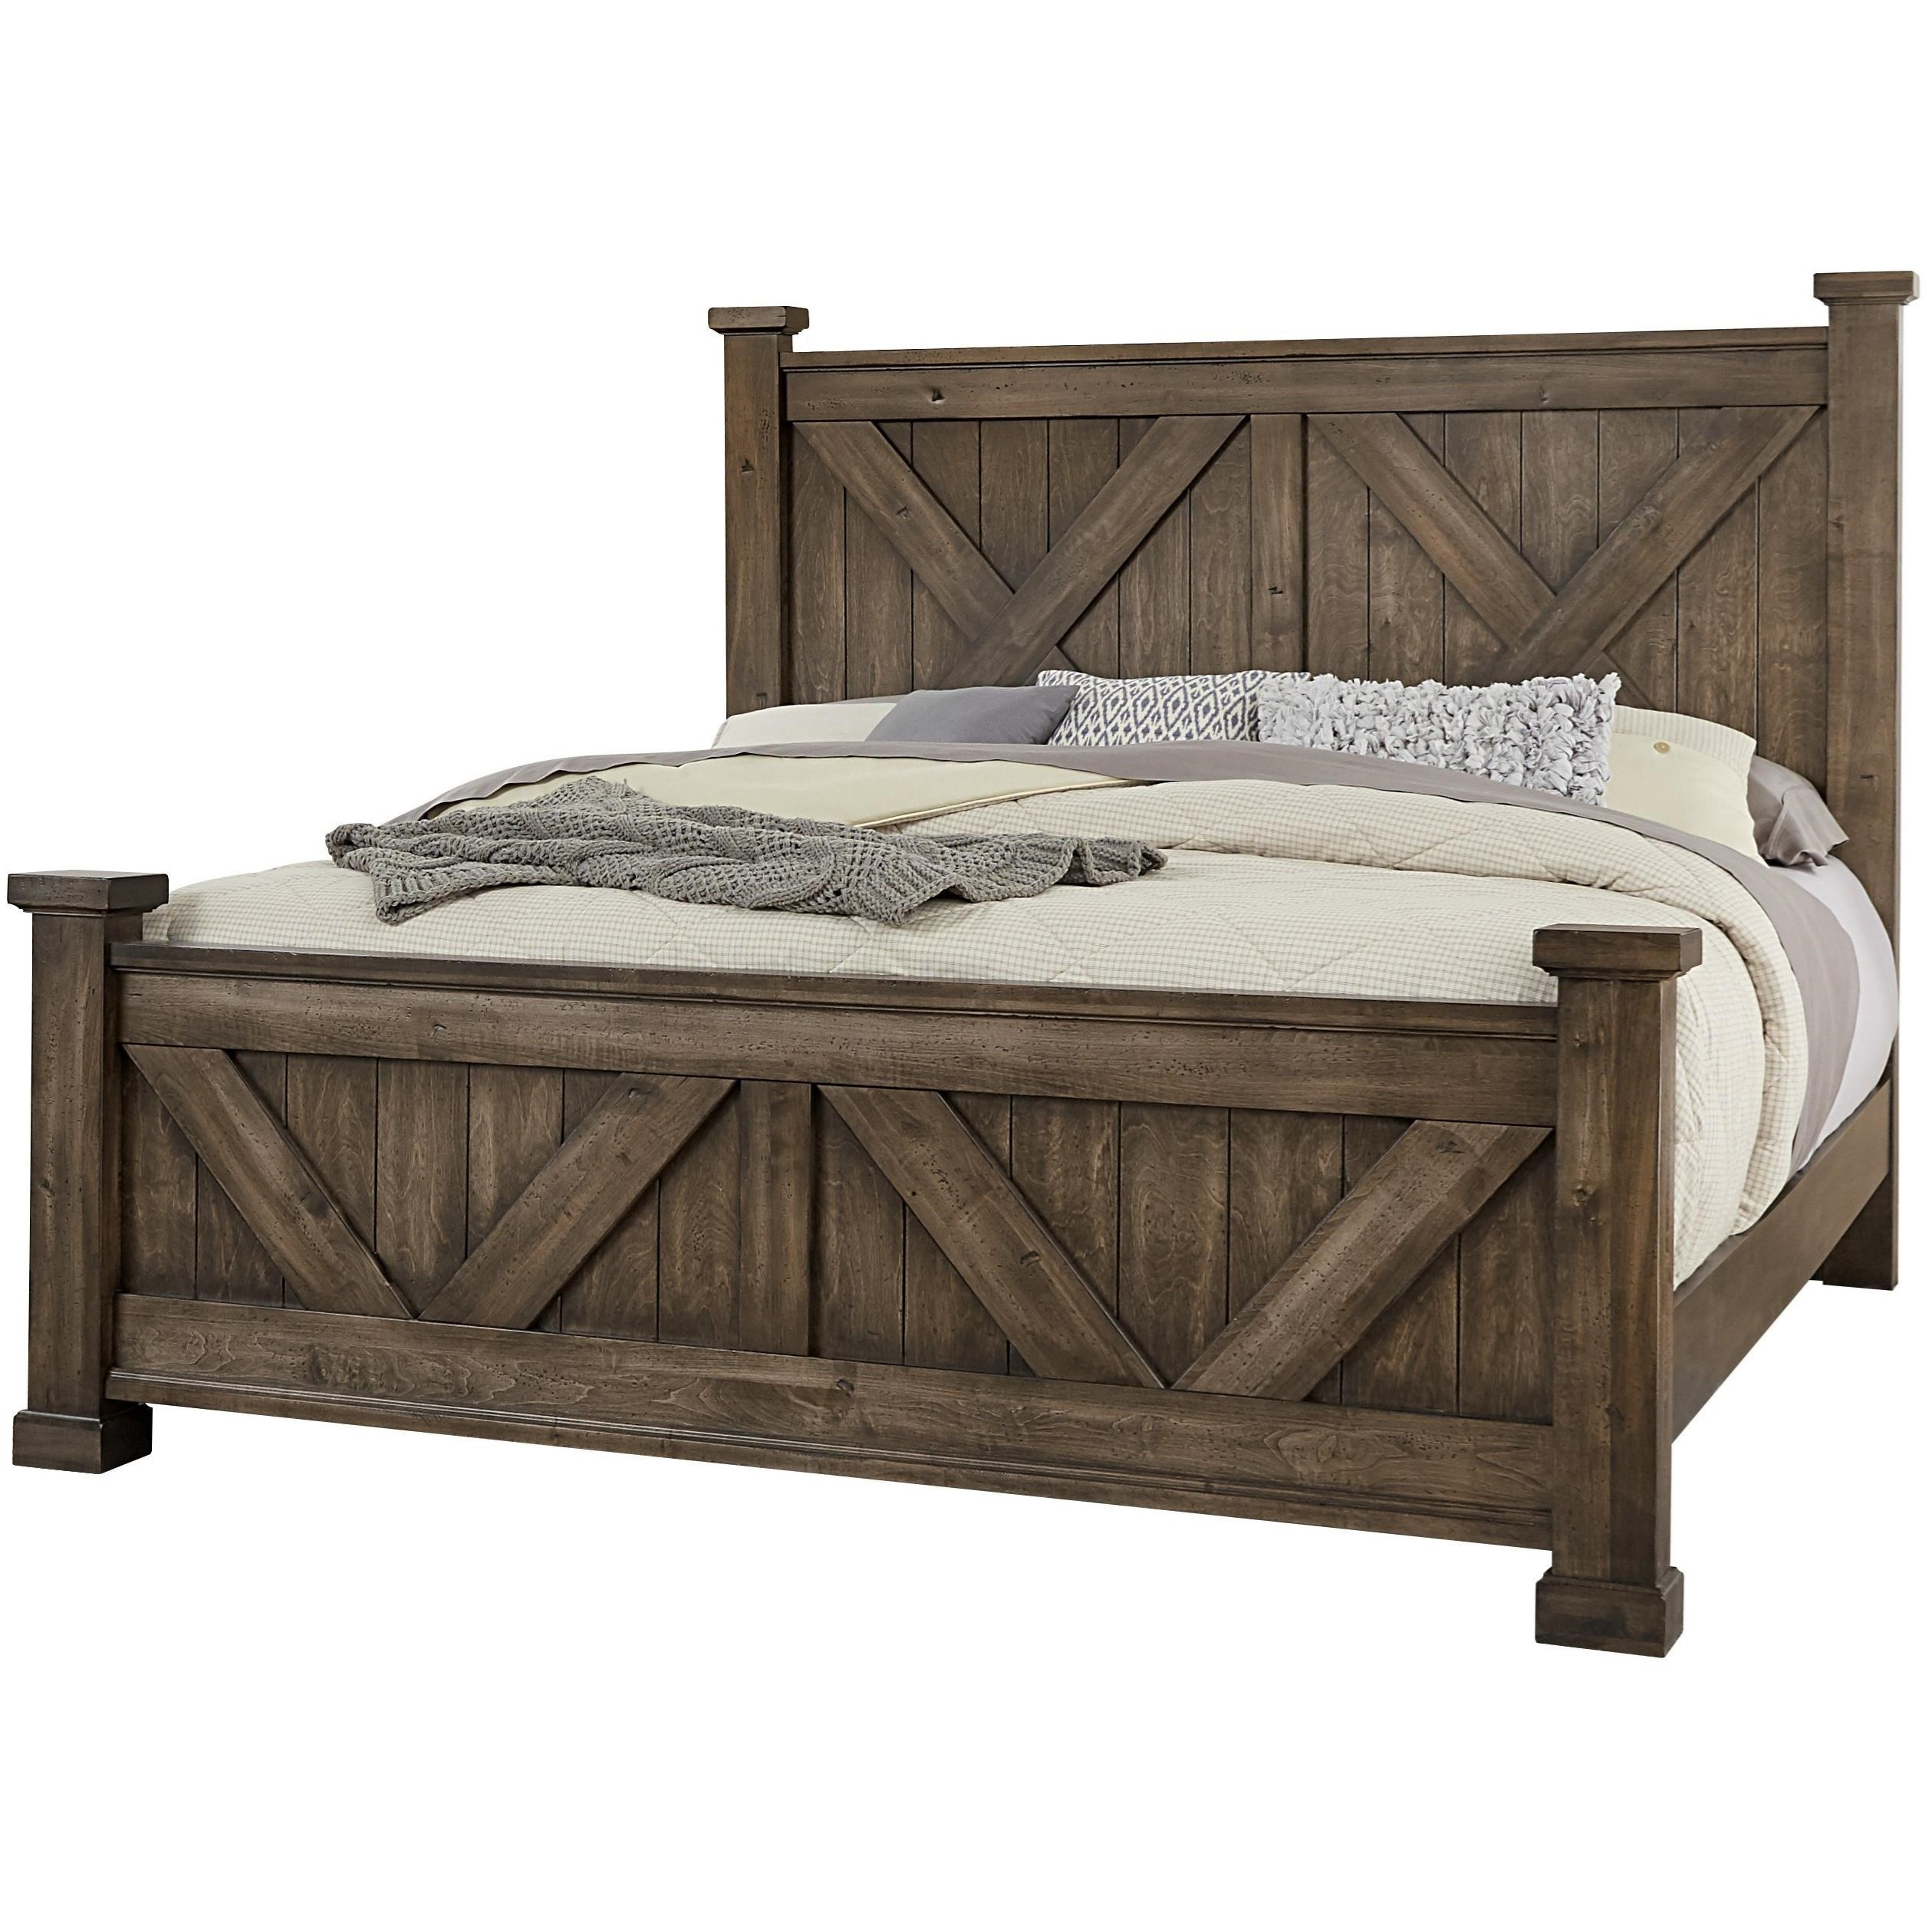 Artisan Post Cool Rustic Solid Wood Queen Barndoor X Headboard